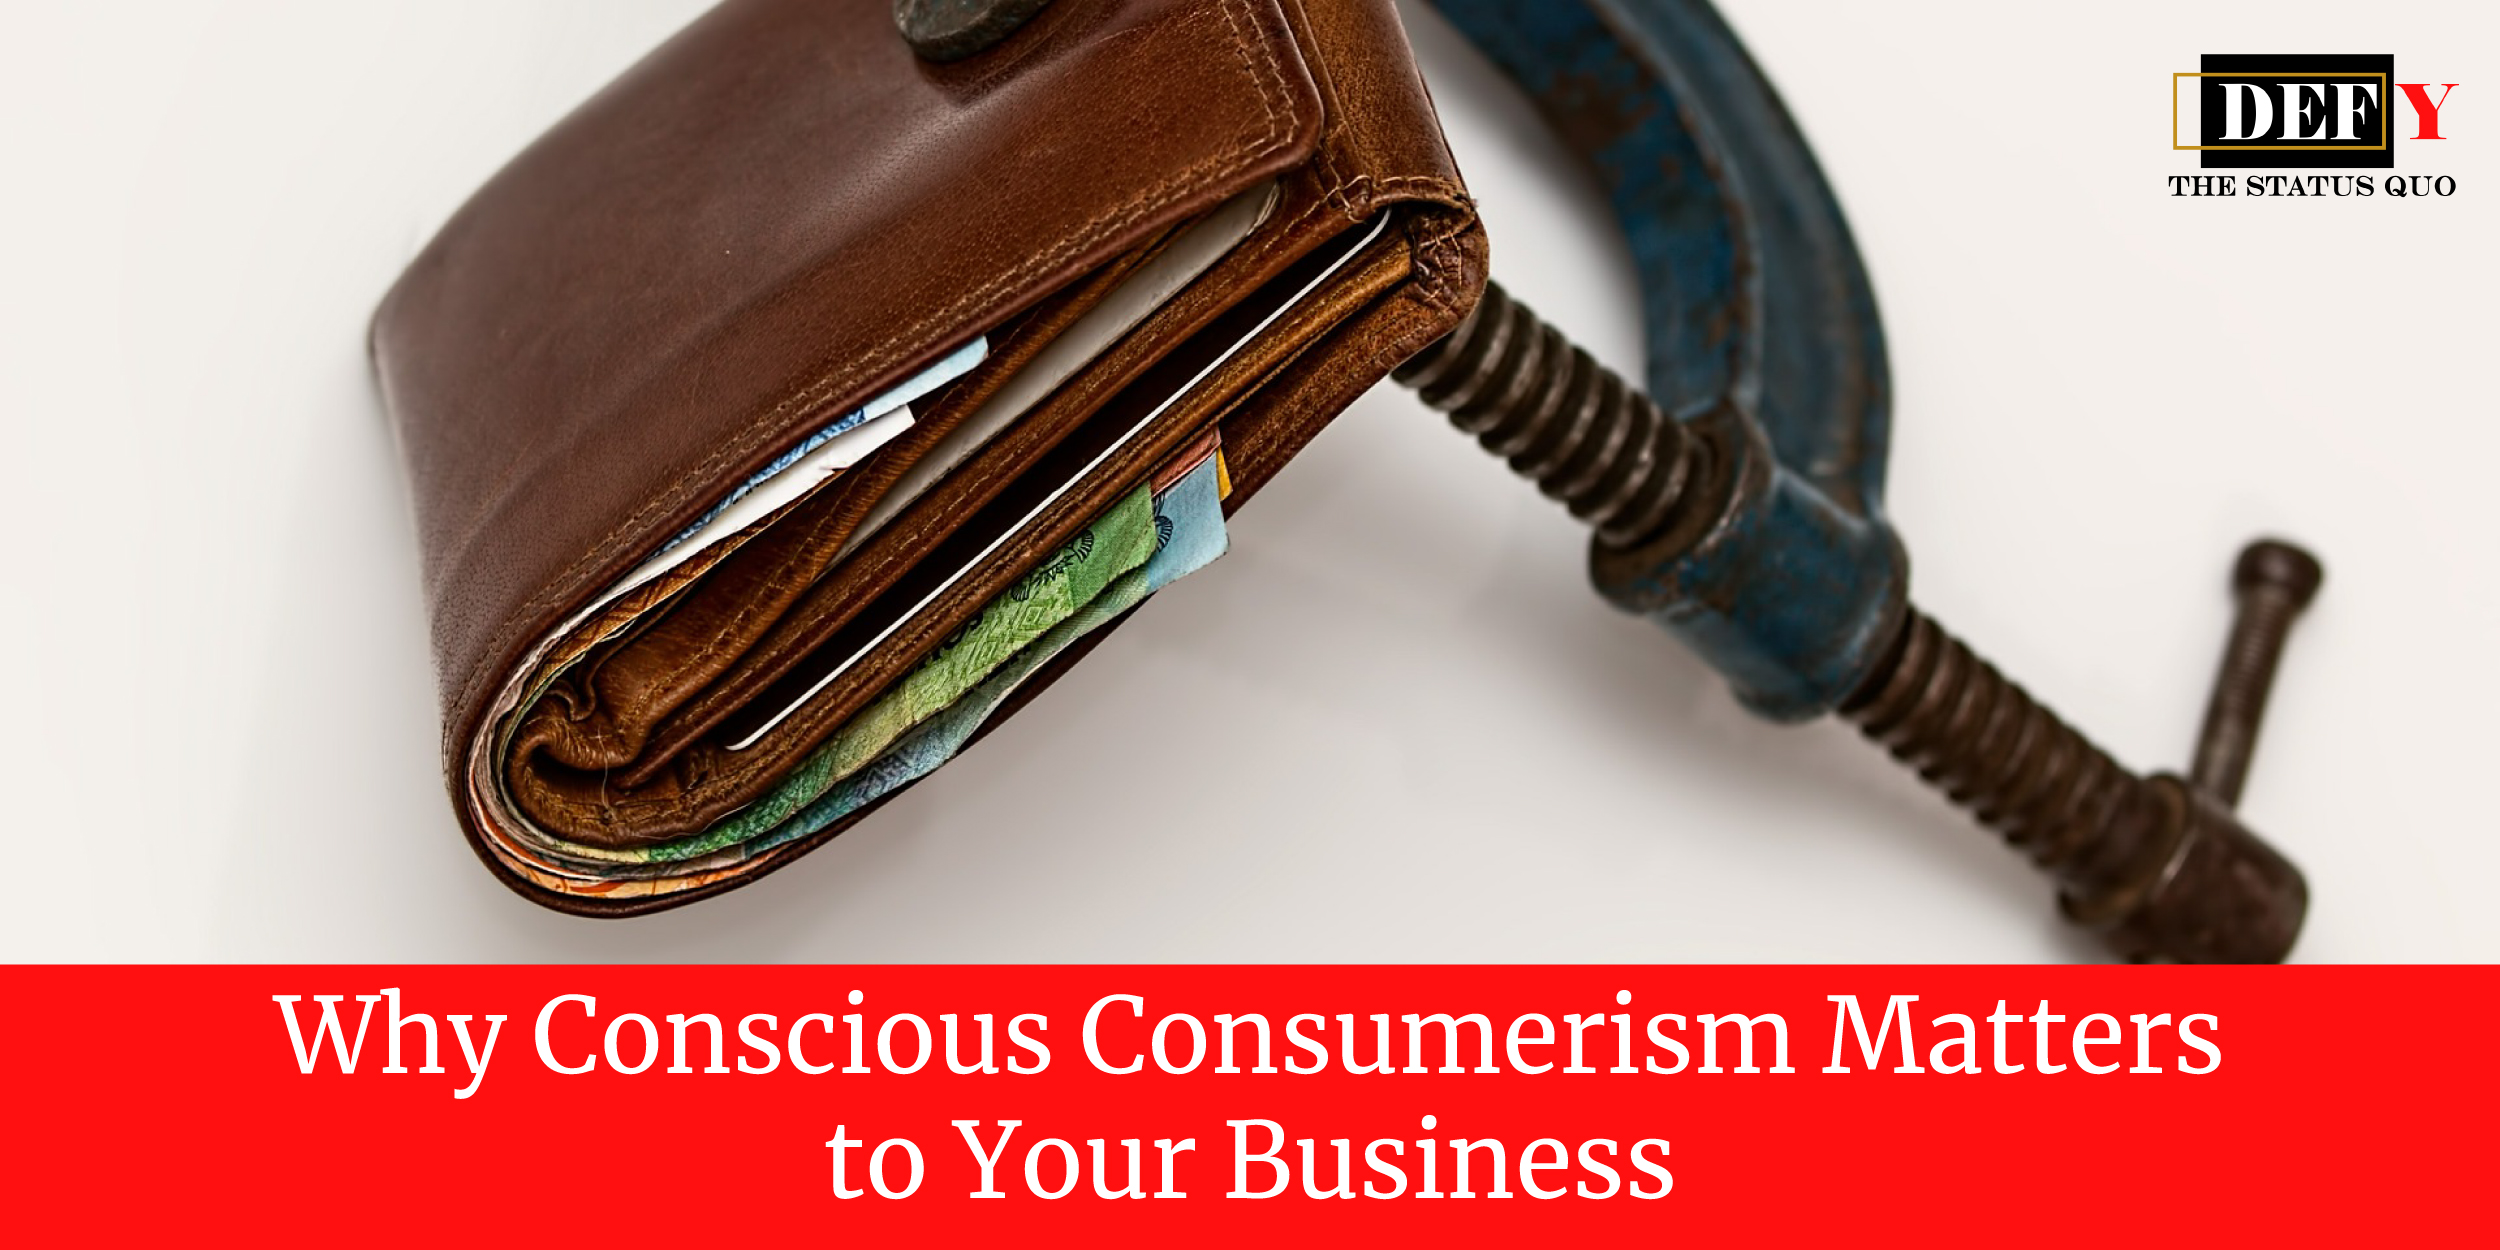 Why Conscious Consumerism Matters to Your Business